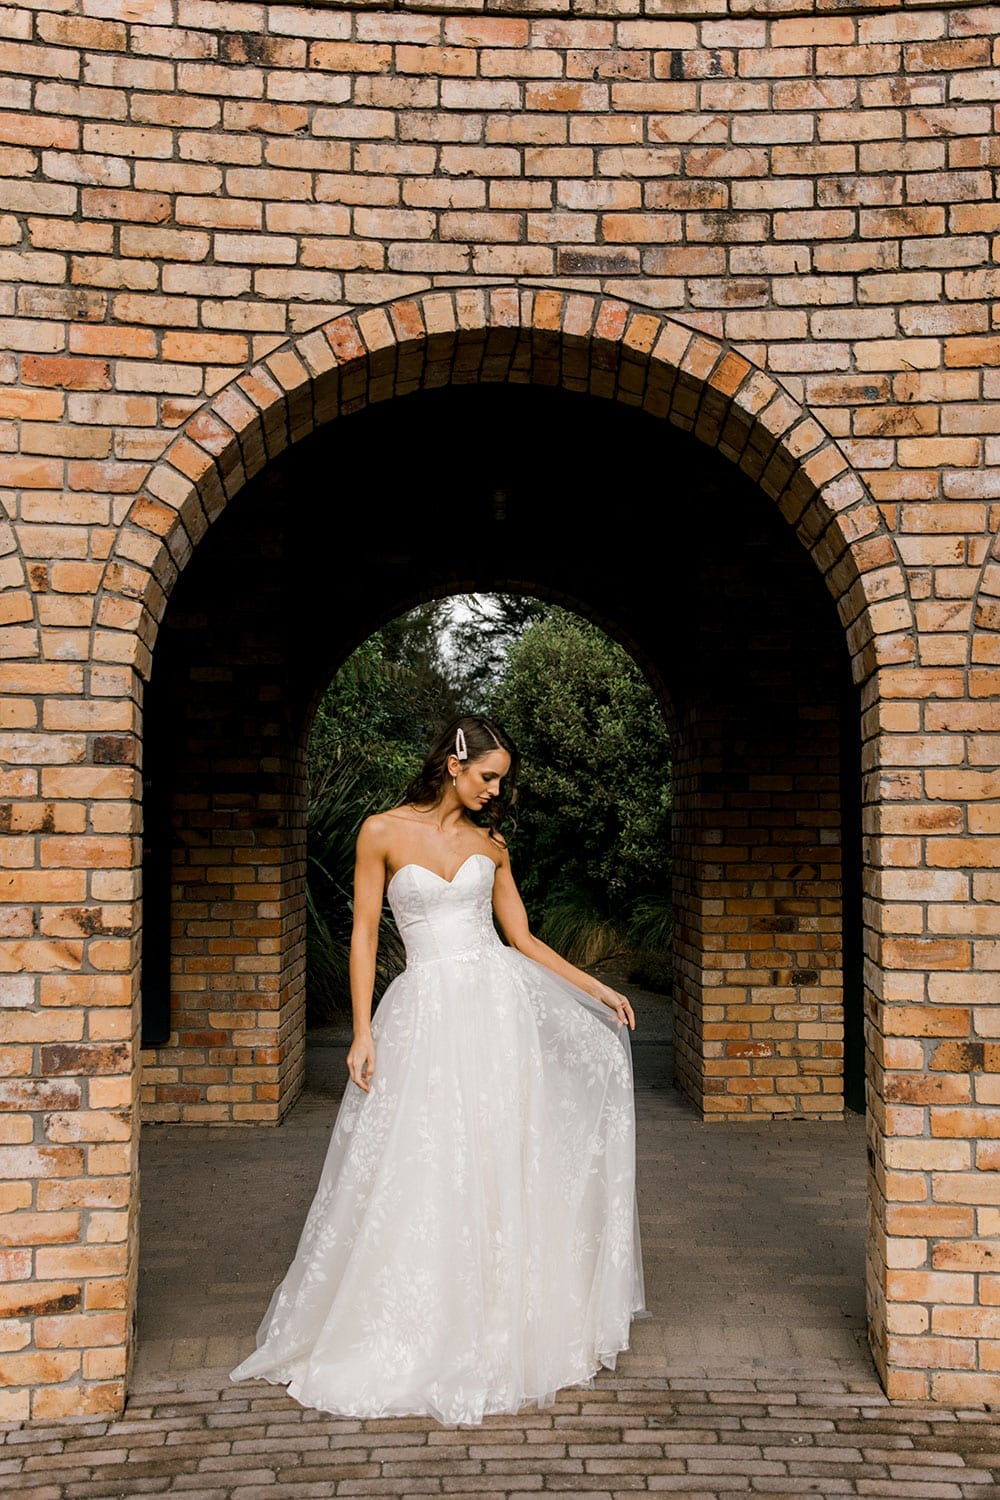 Model wearing Vinka Design Jasmine Wedding Dress, a Strapless Classic Wedding Gown facing down in front of a brick arch in a garden